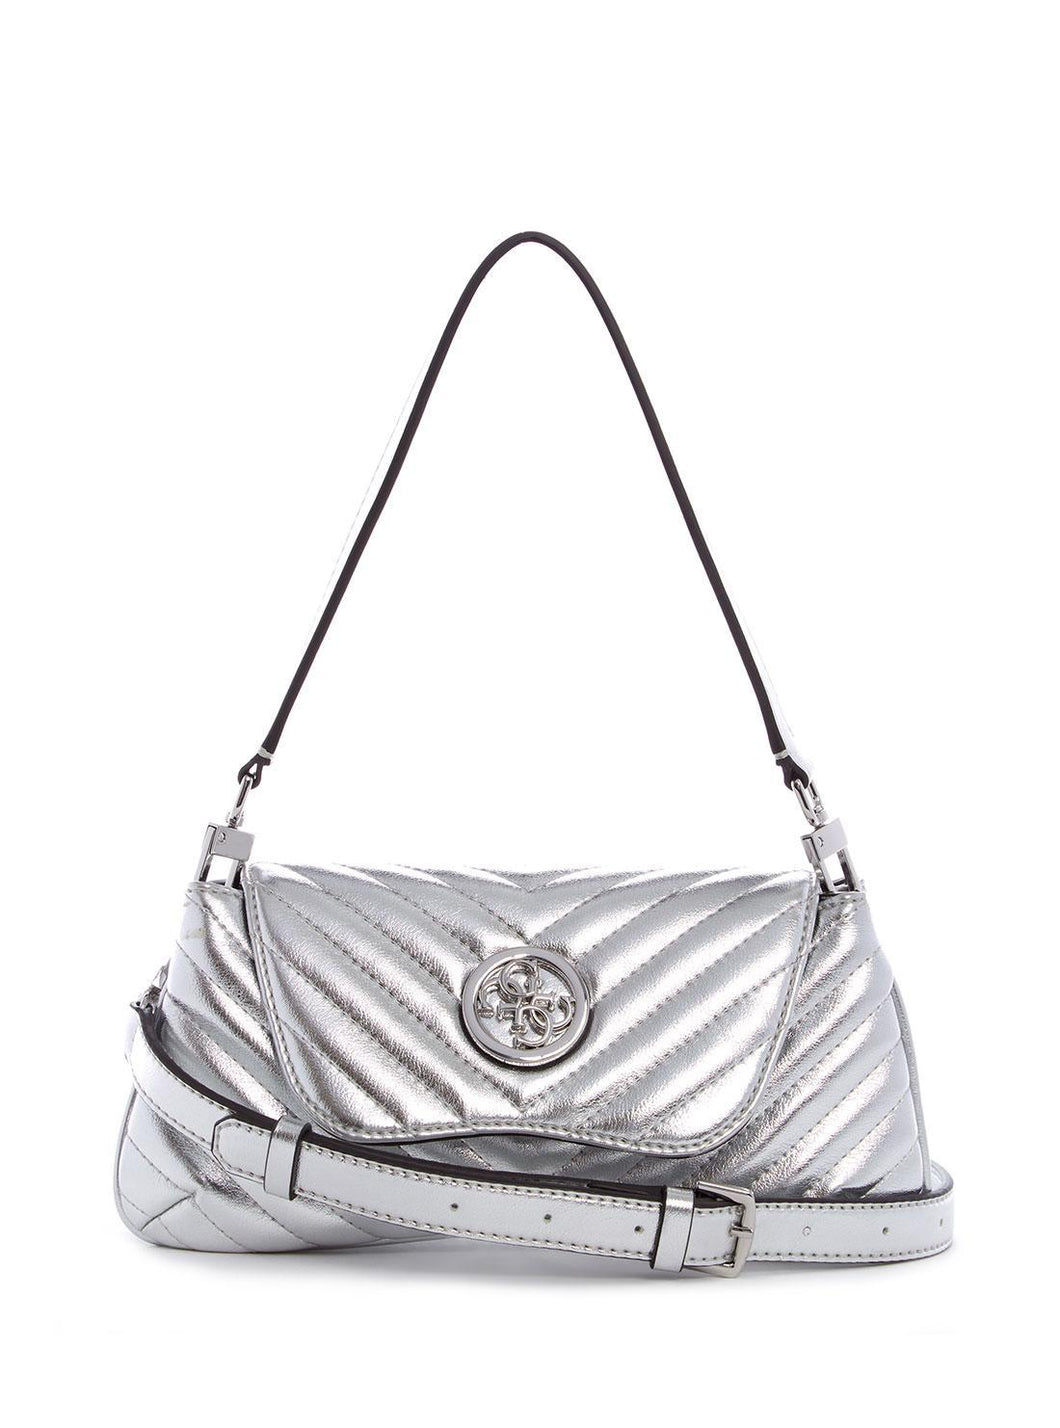 BLAKELY SHOULDER BAG